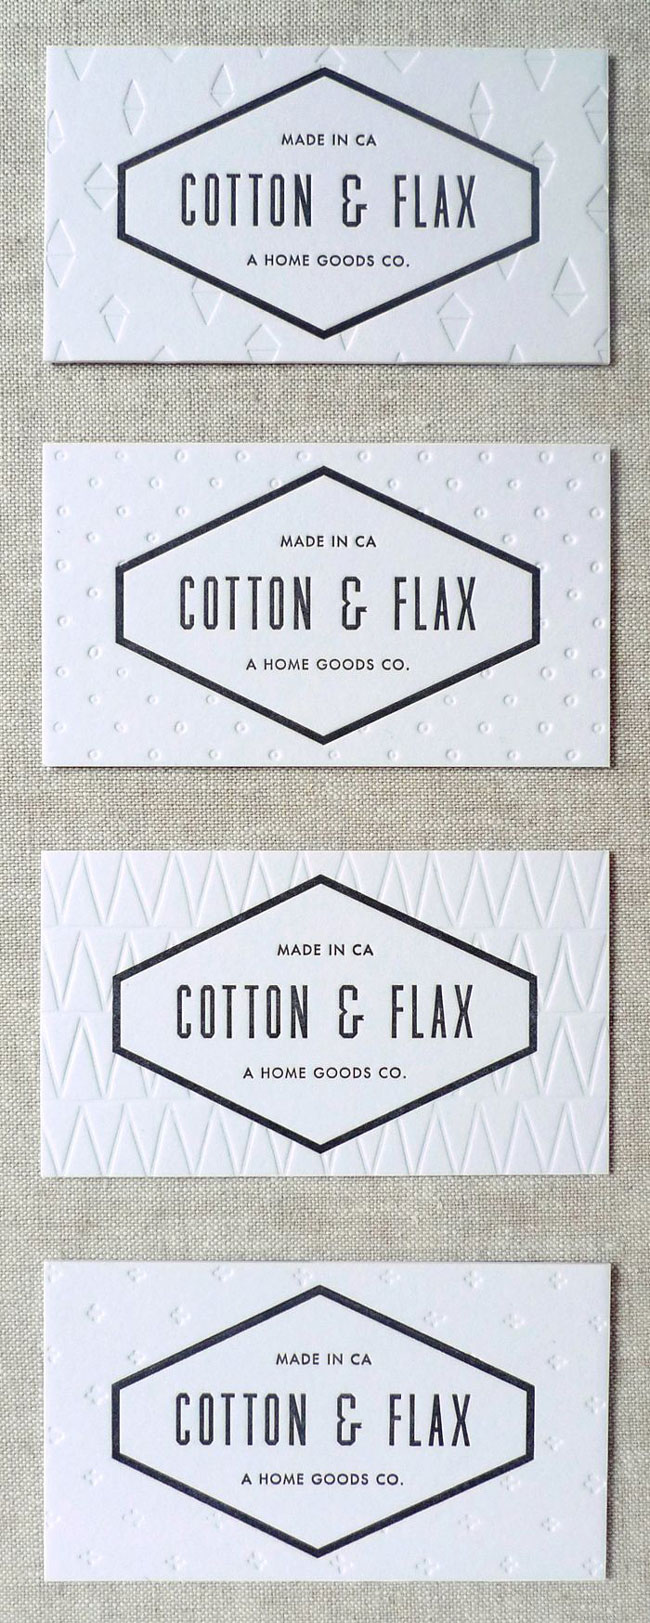 Letterpress printing example Cotton & Flax